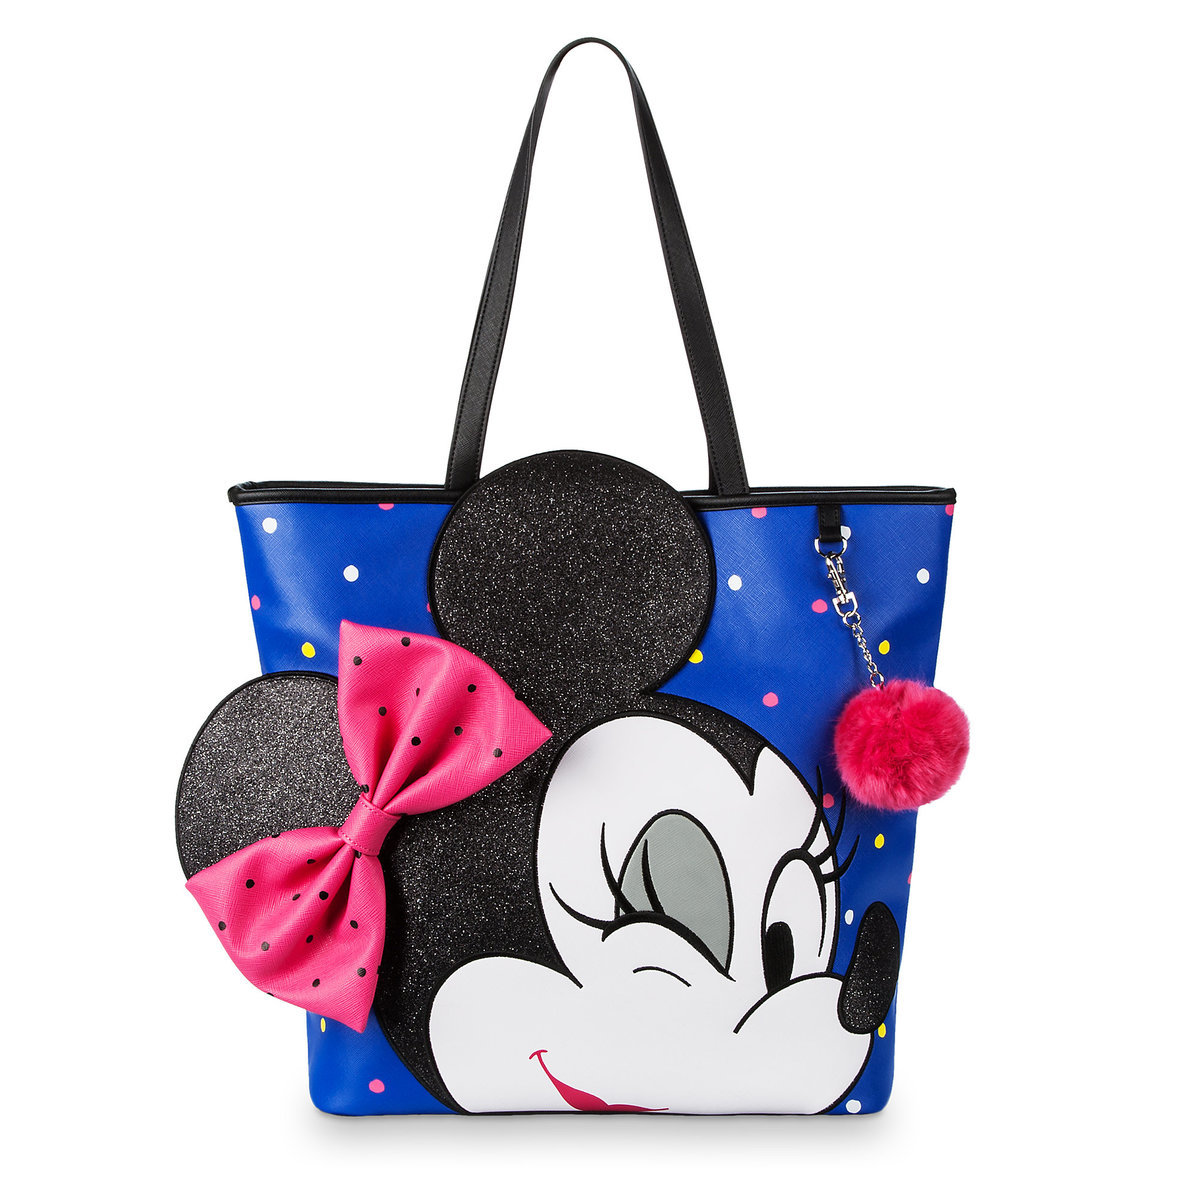 92fa5d0aff9 Product Image of Minnie Mouse Tote by Loungefly   1